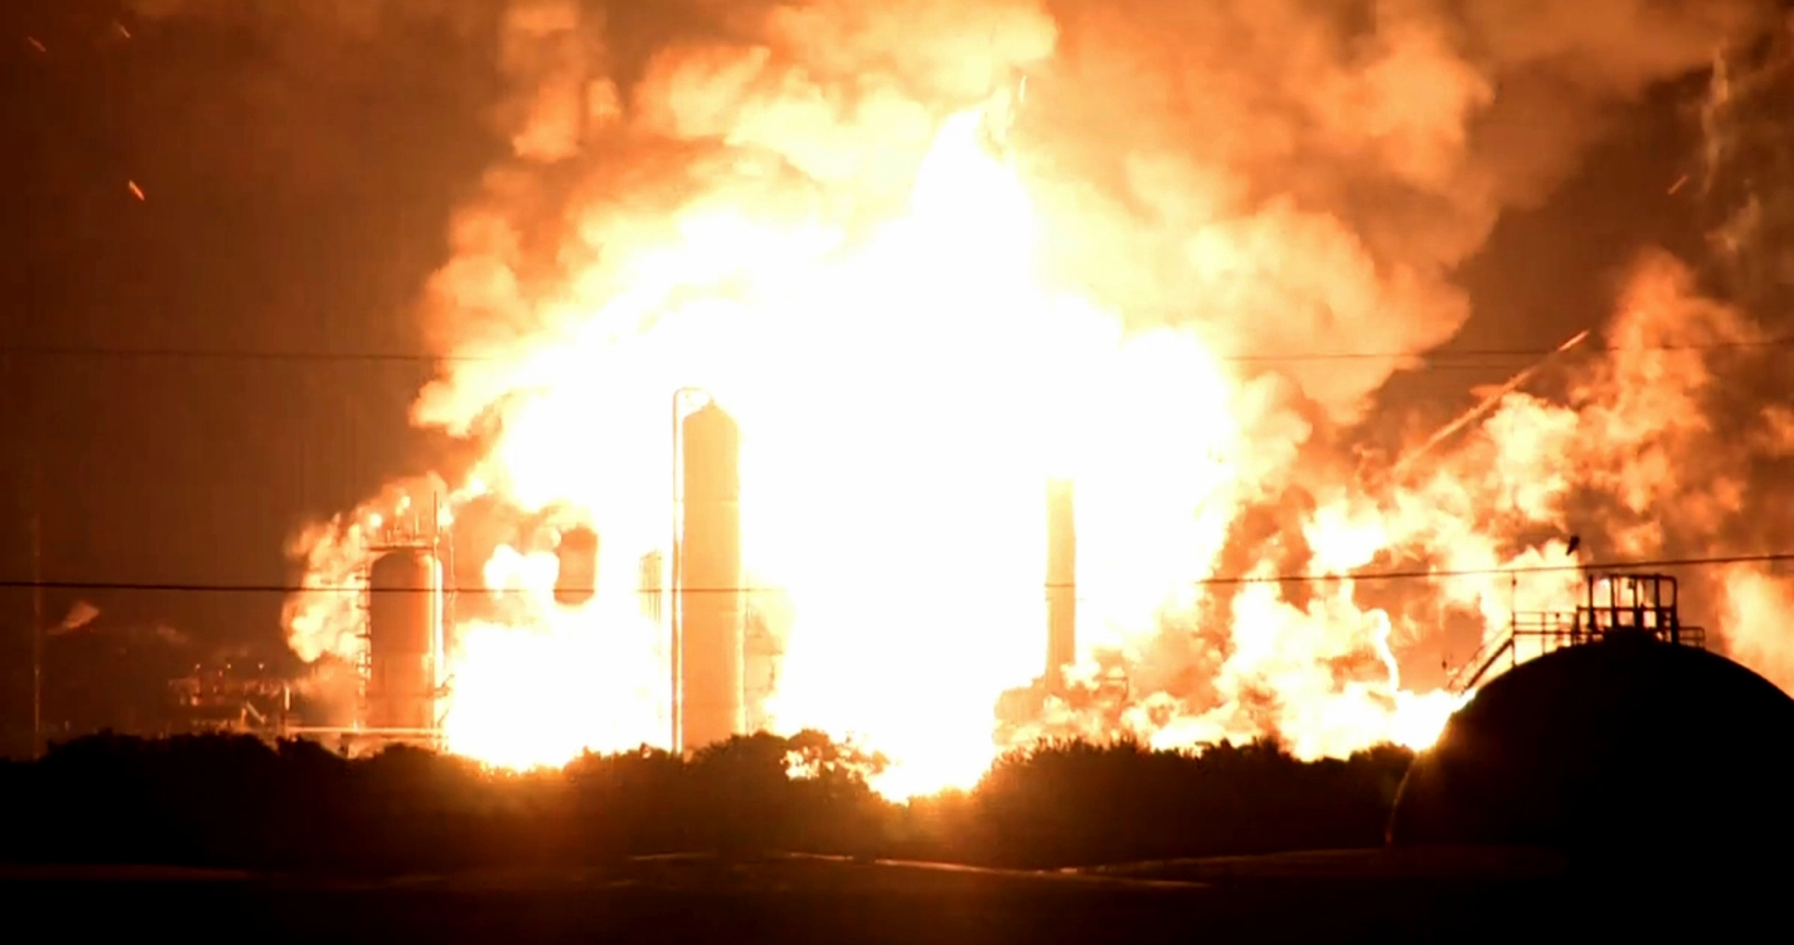 Refinery Explosion Leads to Questions of Oversight, Influence